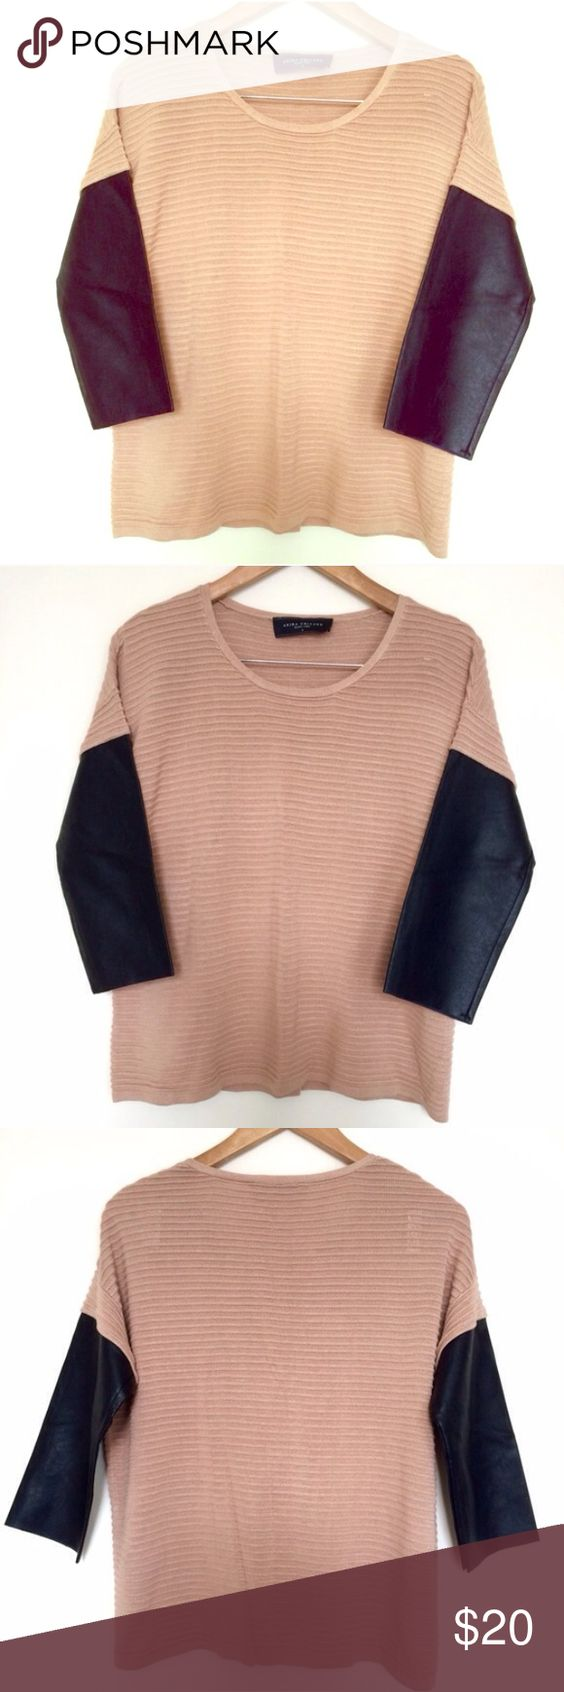 Akira Knit Top with Faux Leather Sleeves - Small Blush/nude top with black faux leather sleeves. Excellent used condition. Size small. AKIRA Tops